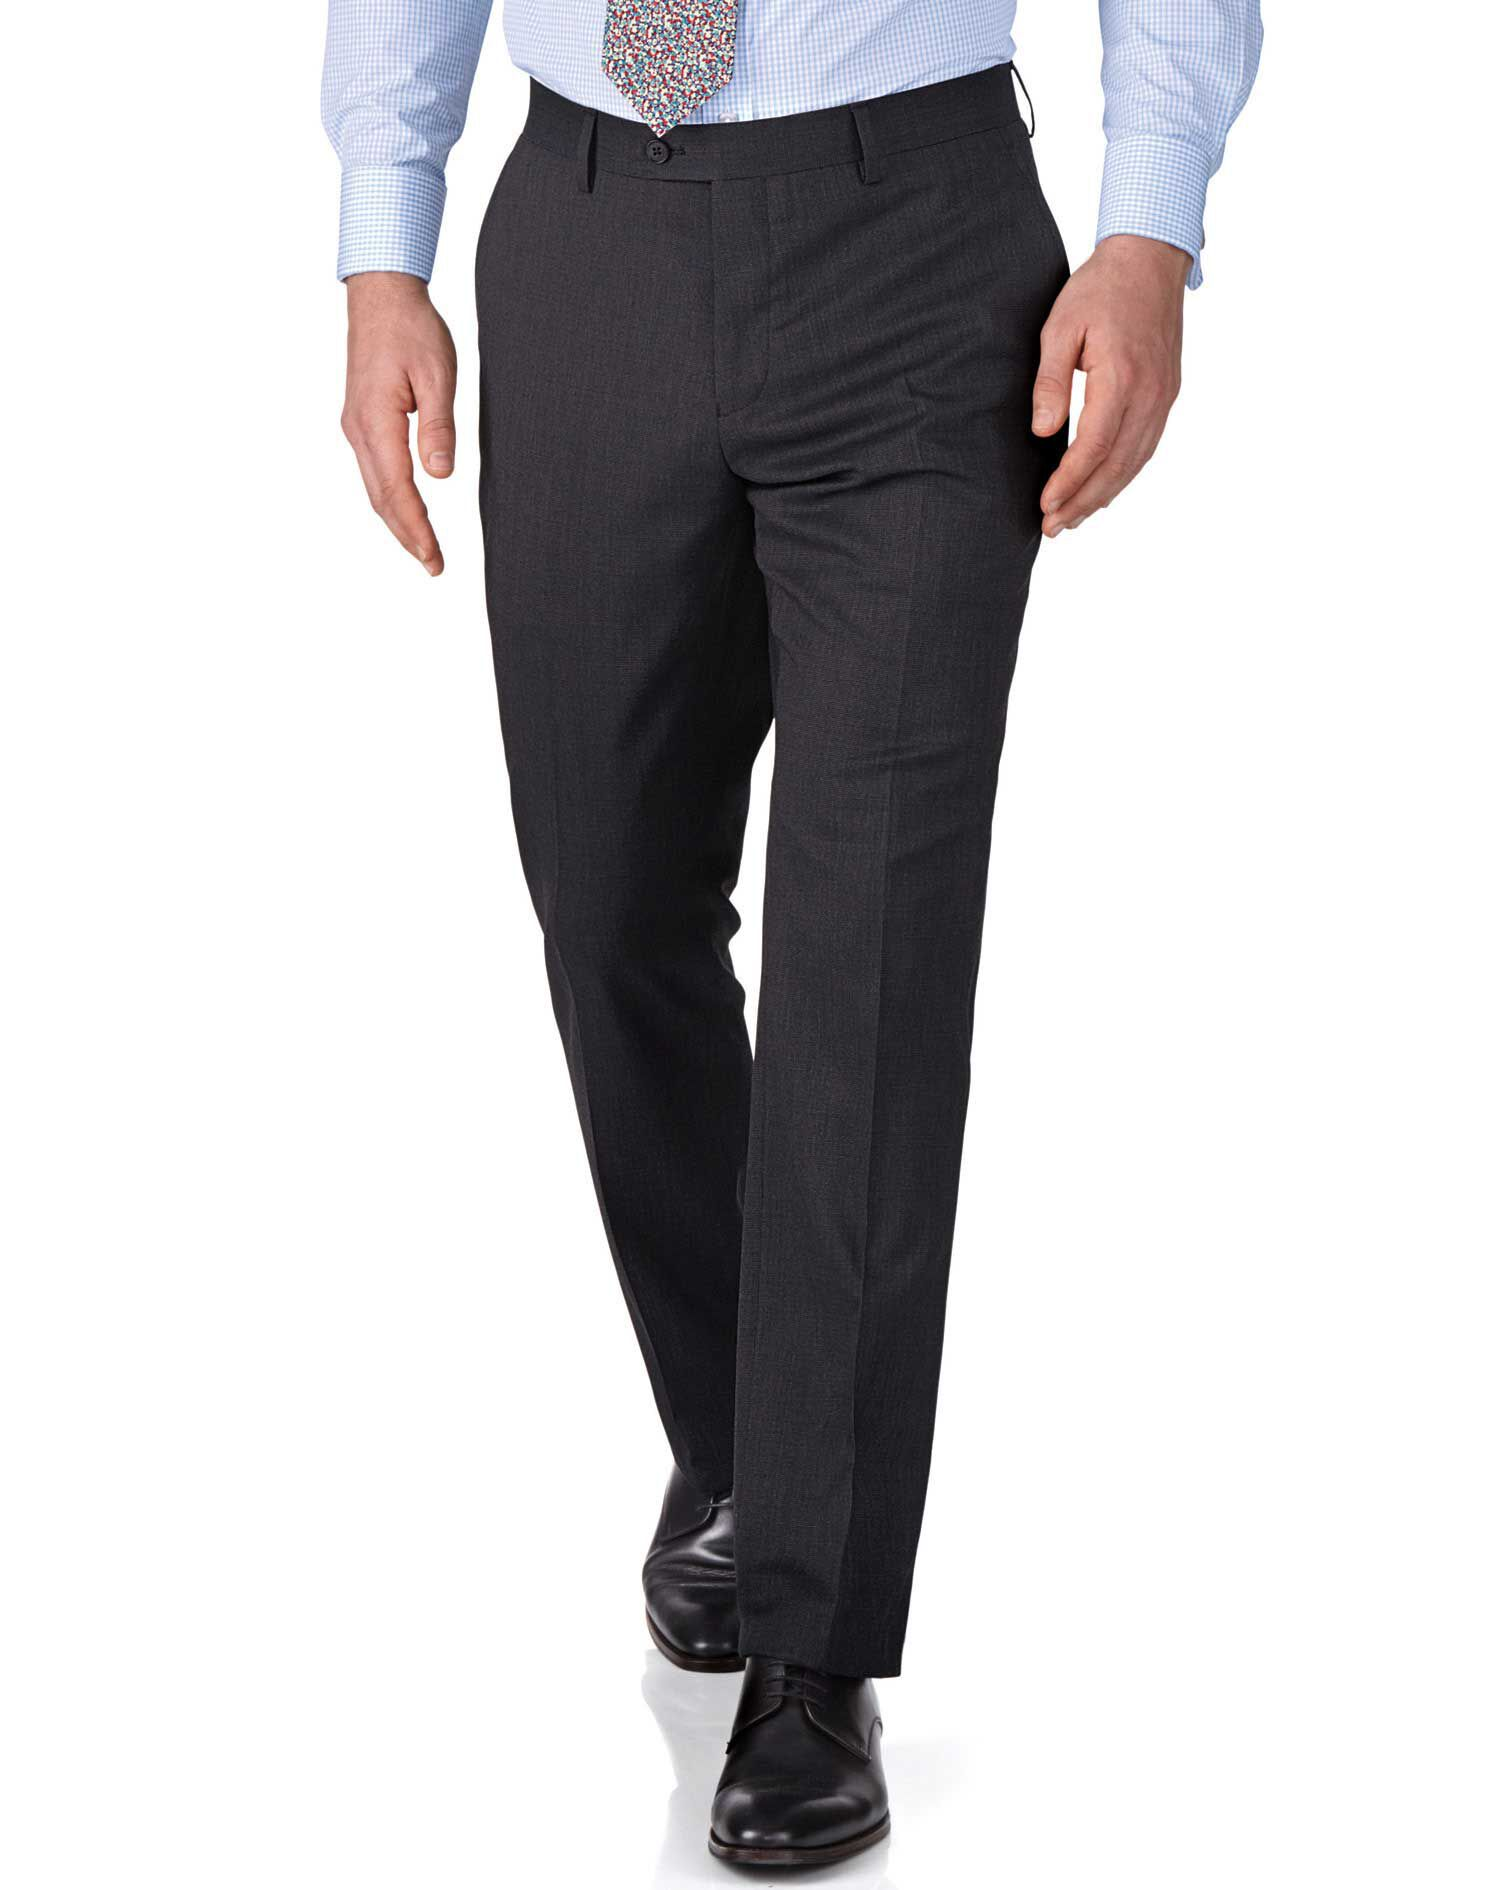 Charcoal Slim Fit End-On-End Business Suit Trousers Size W40 L34 by Charles Tyrwhitt